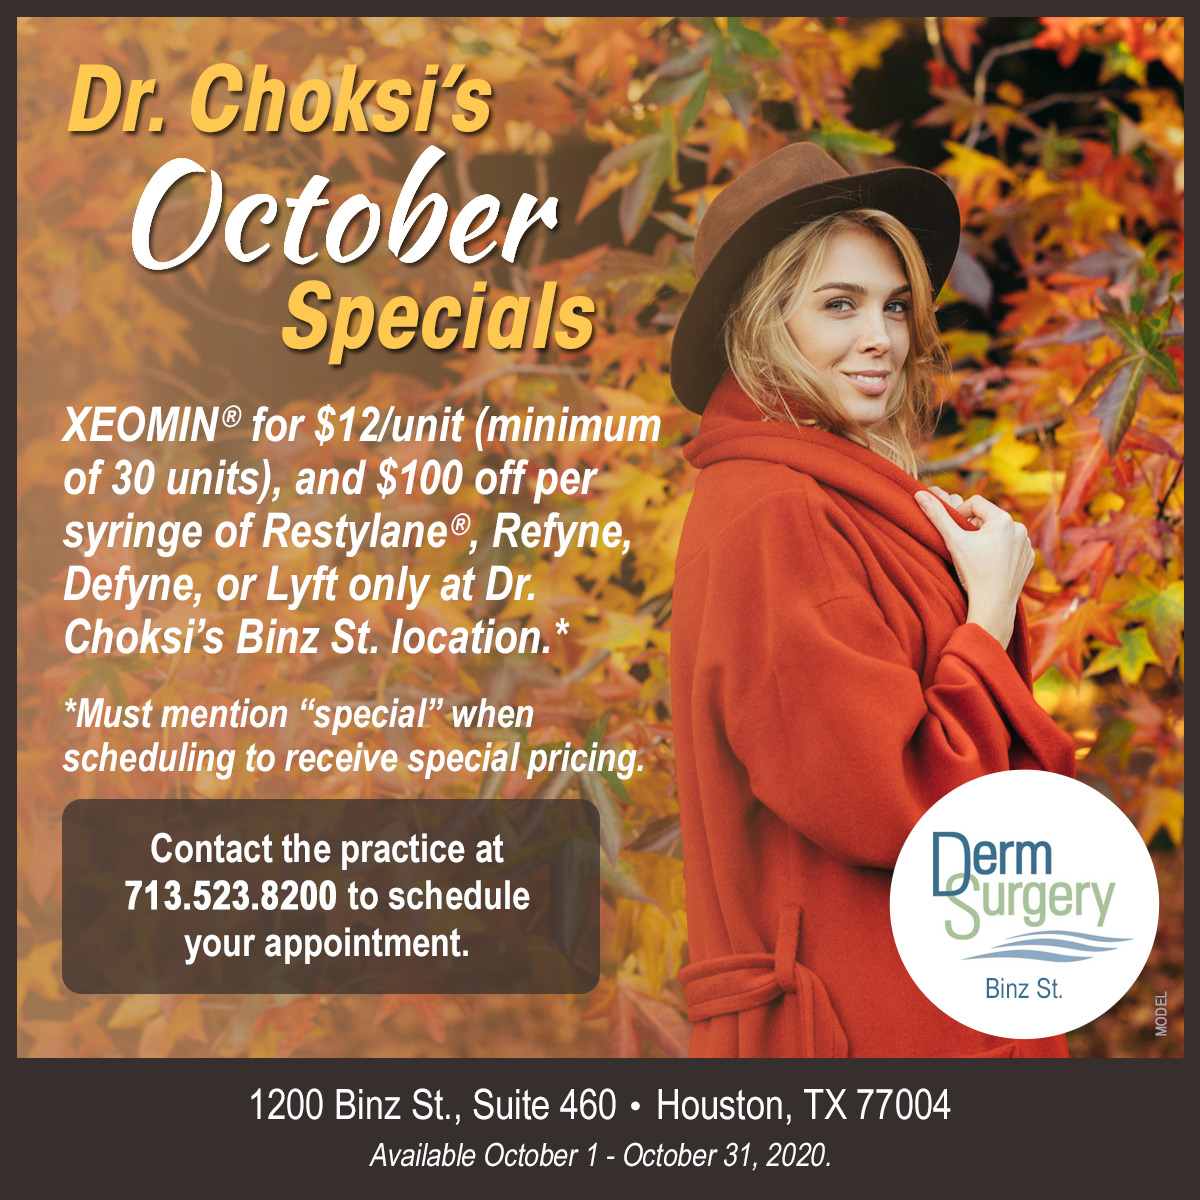 Dr. Choksi's October Special